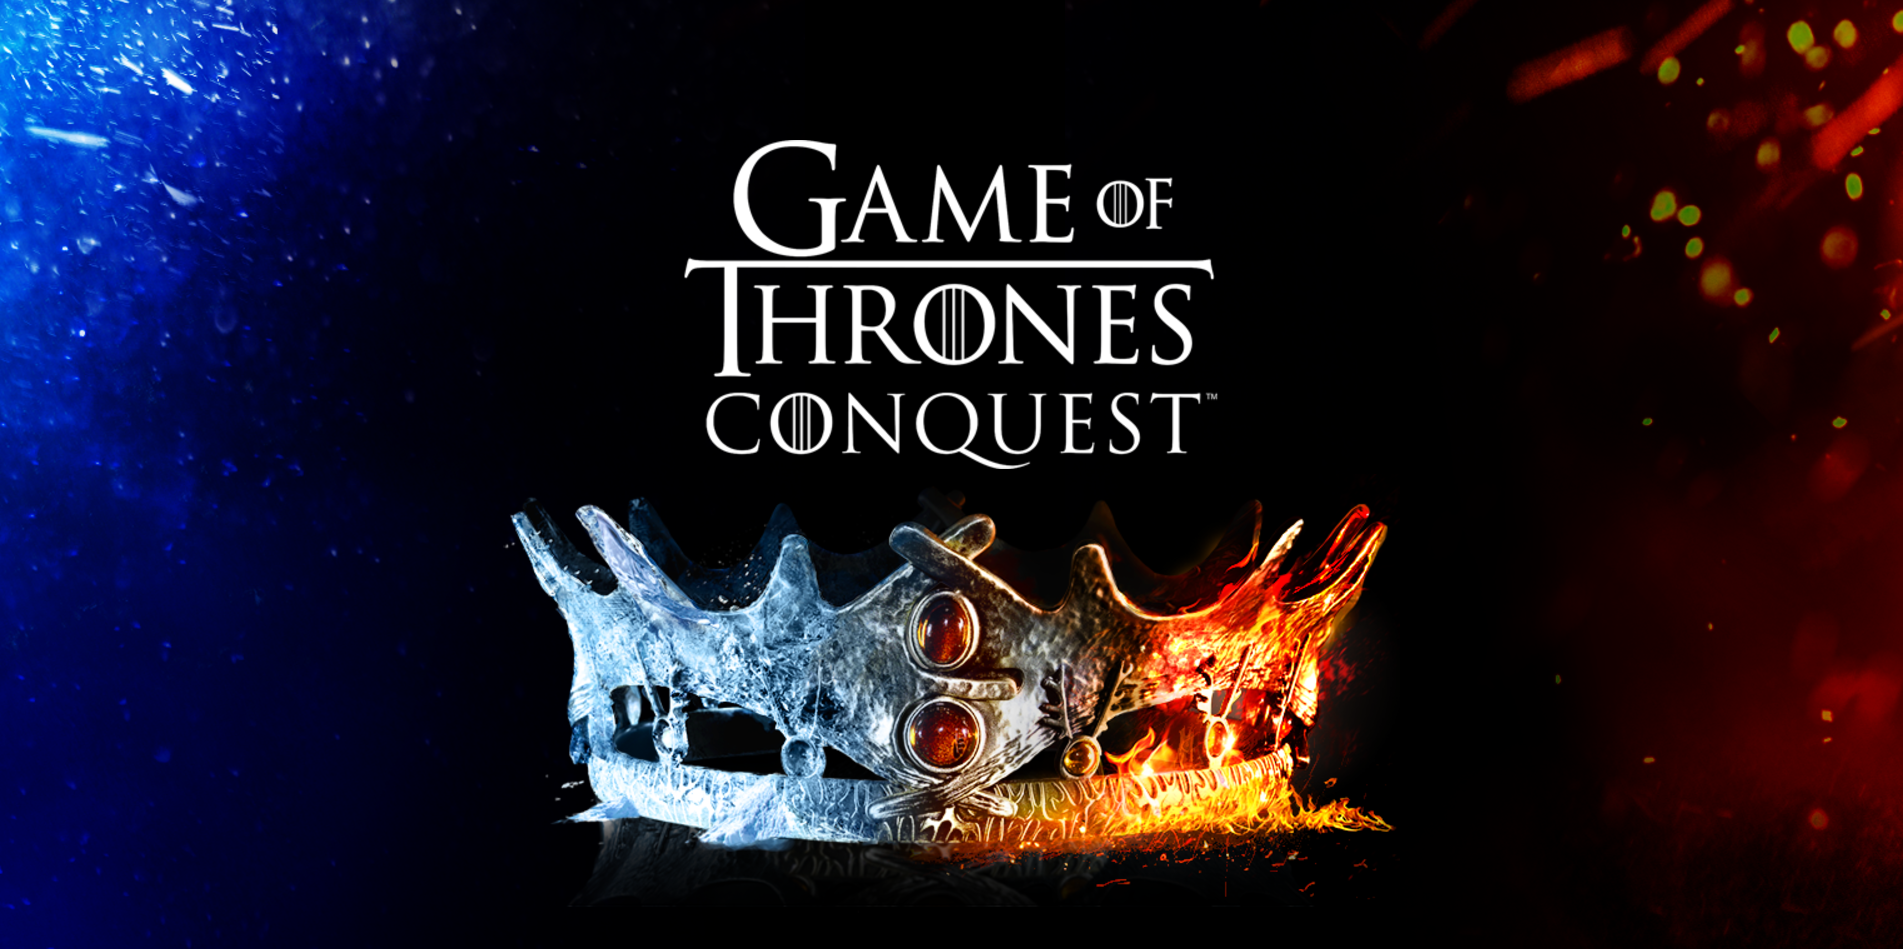 game of thrones conquest game of thrones wiki fandom. Black Bedroom Furniture Sets. Home Design Ideas